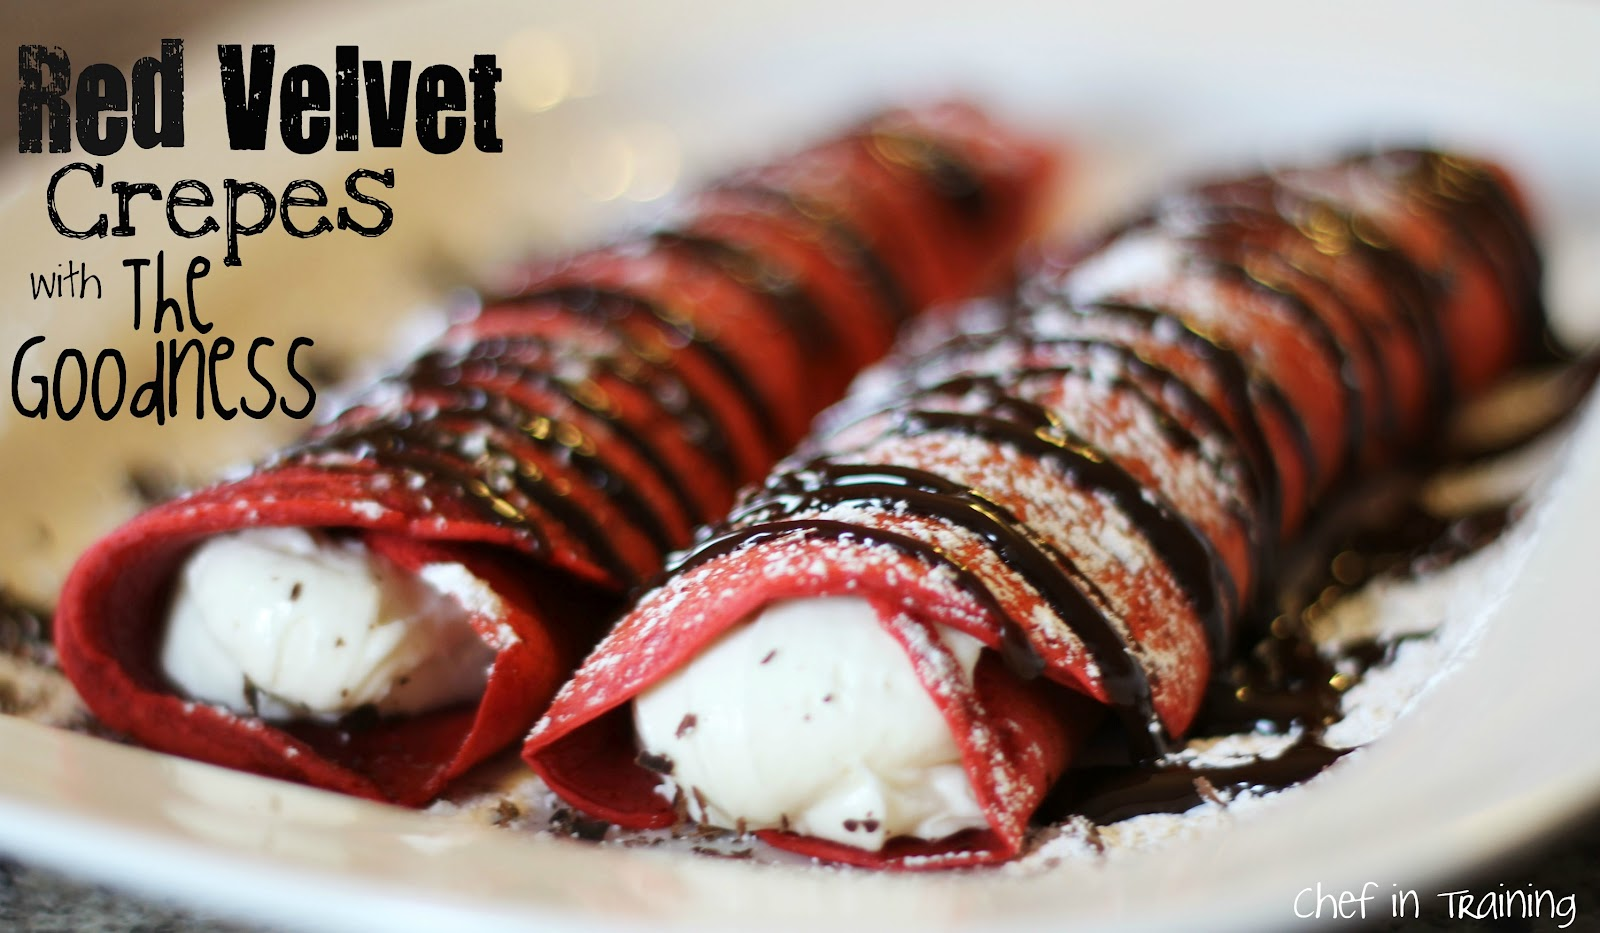 Red Velvet Crepes with The Goodness